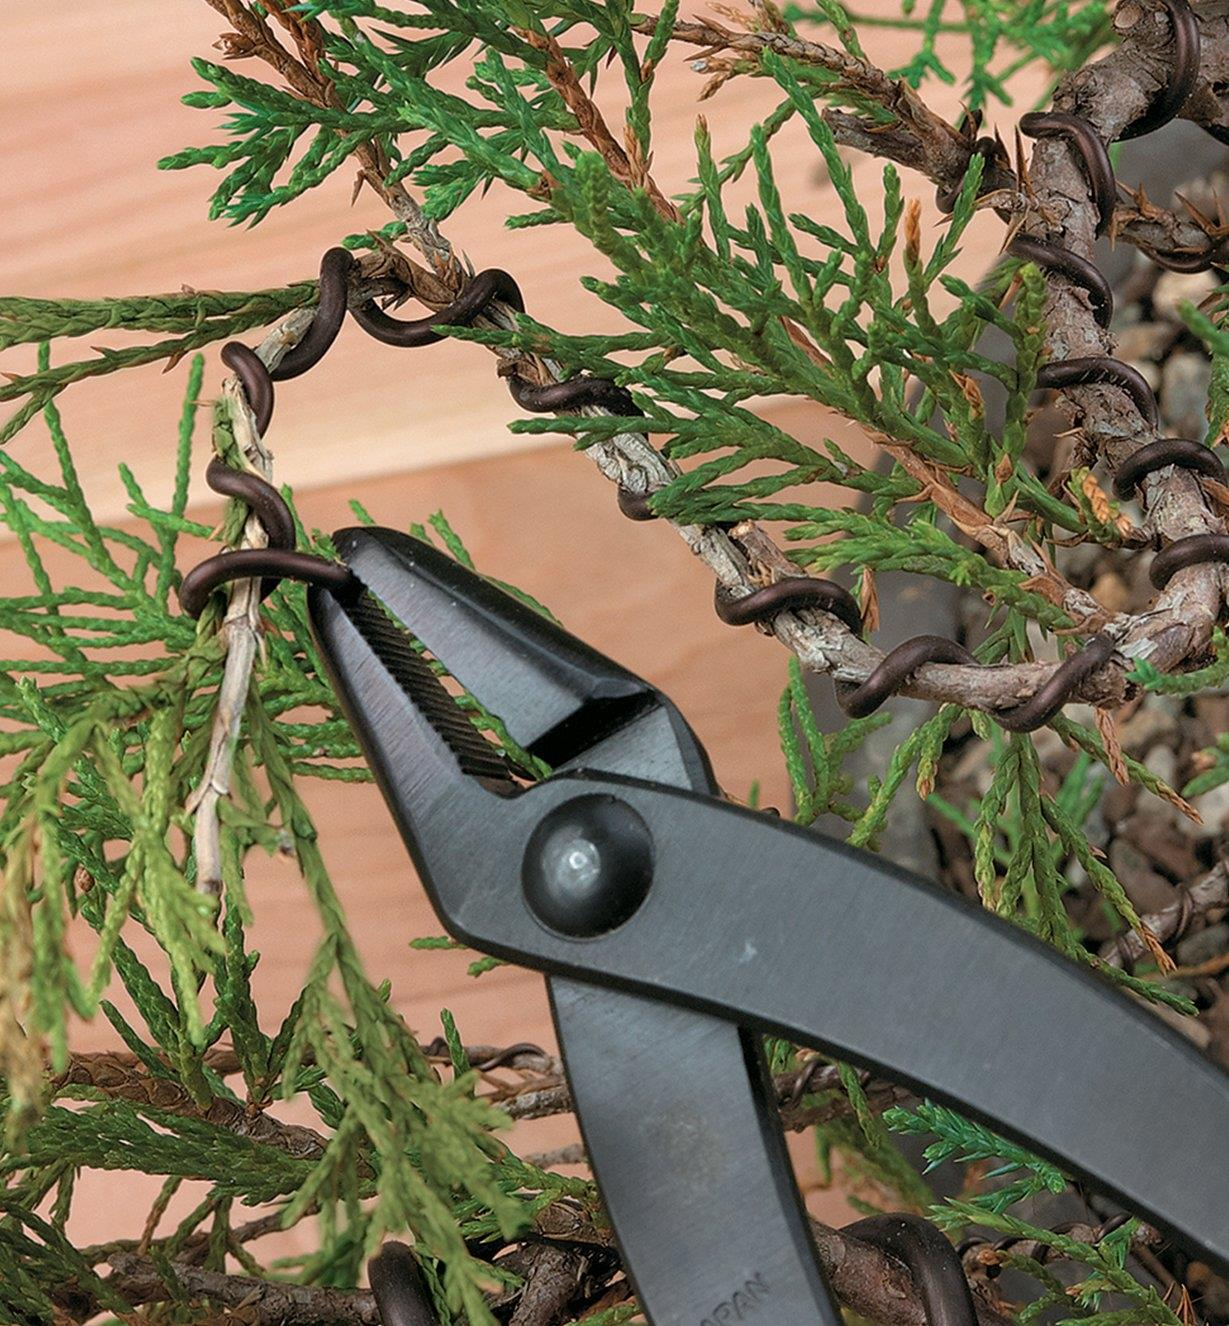 BC126 - Long-Nose Pliers